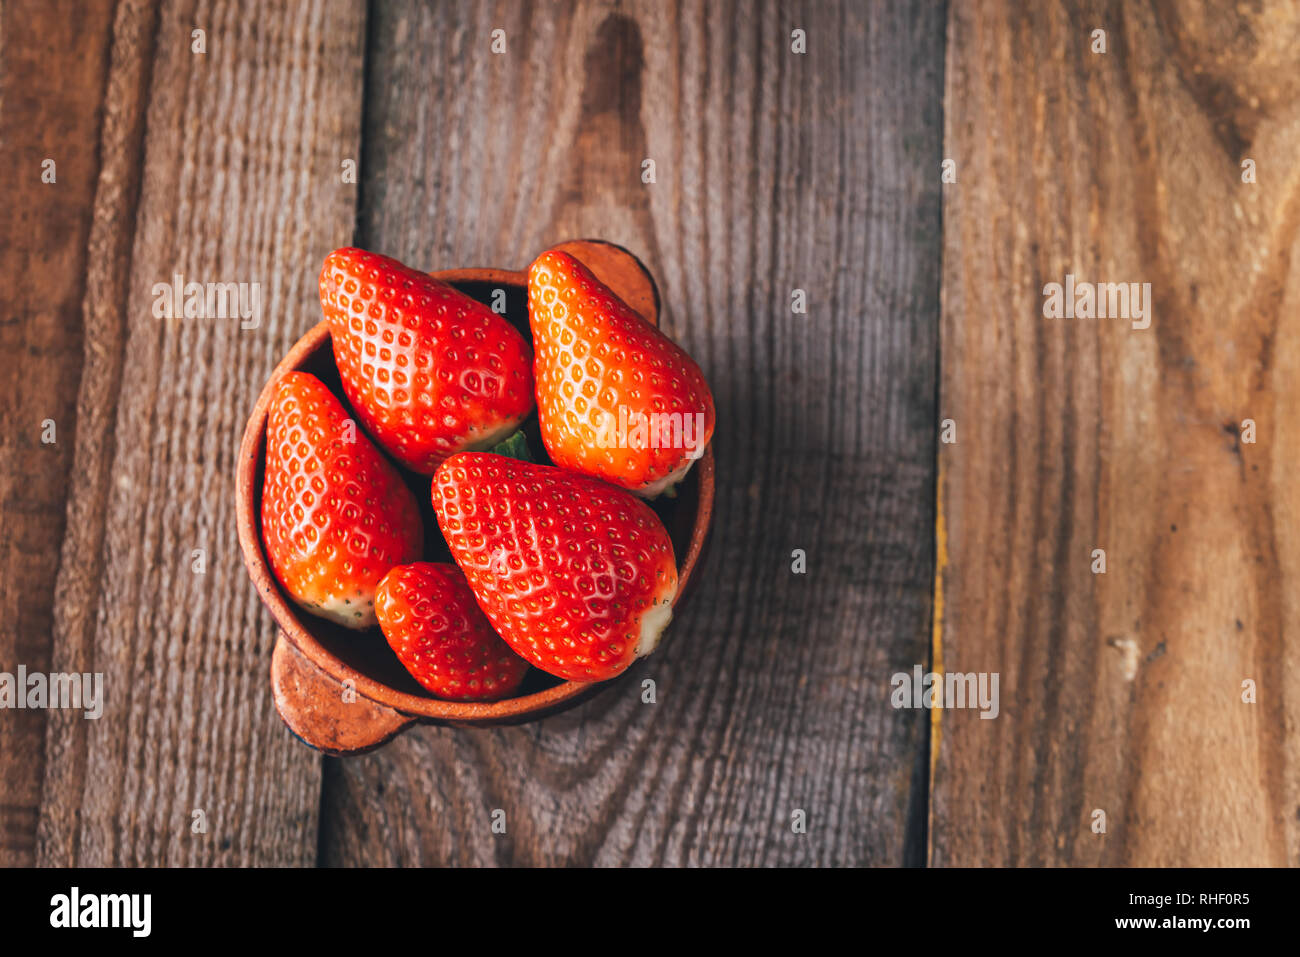 Bowl of fresh strawberries on the wooden table Stock Photo